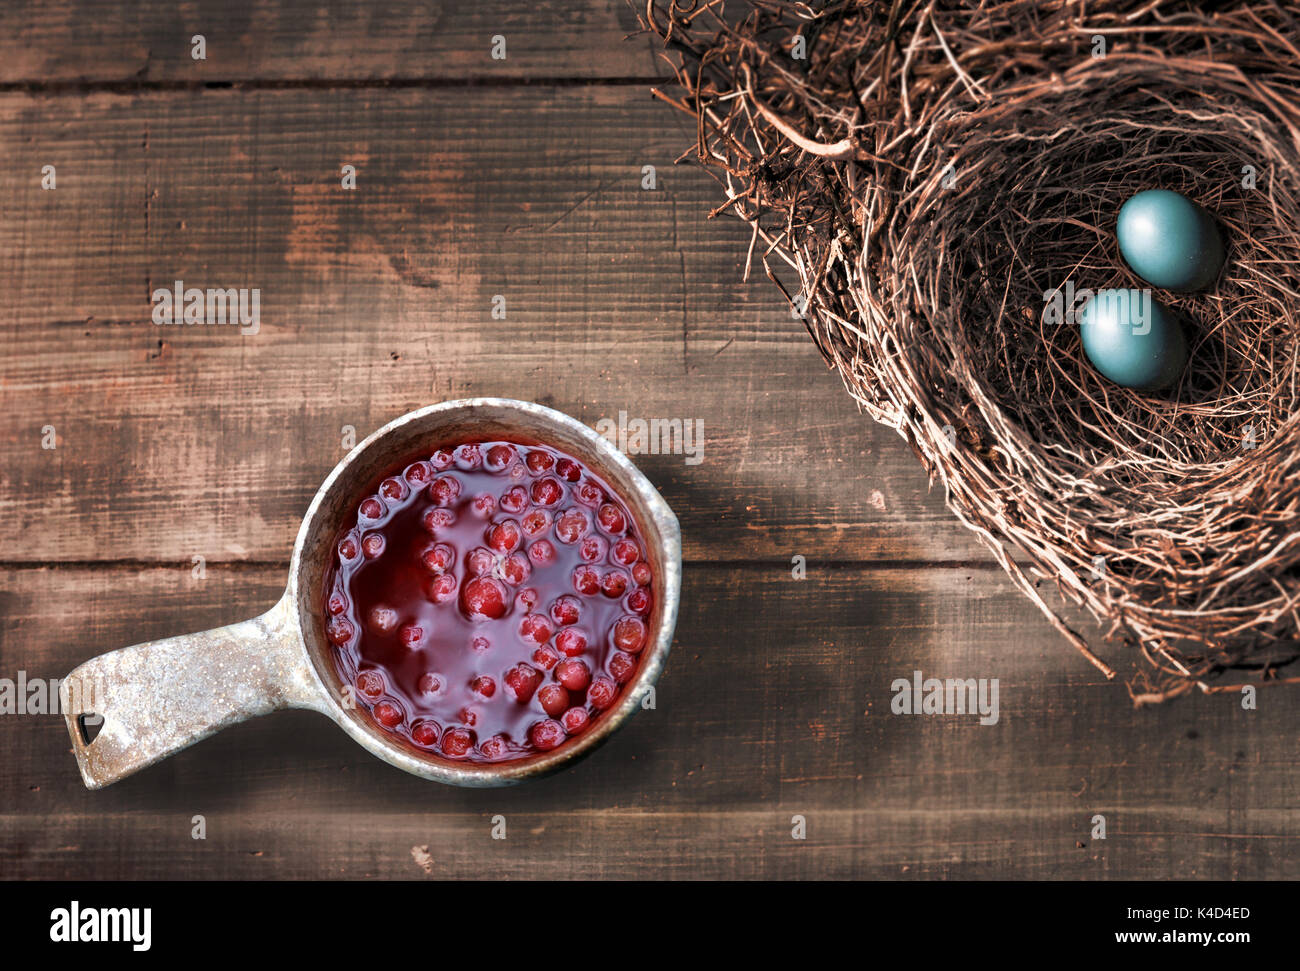 Lingonberry Drink and Bird Eggs - Stock Image